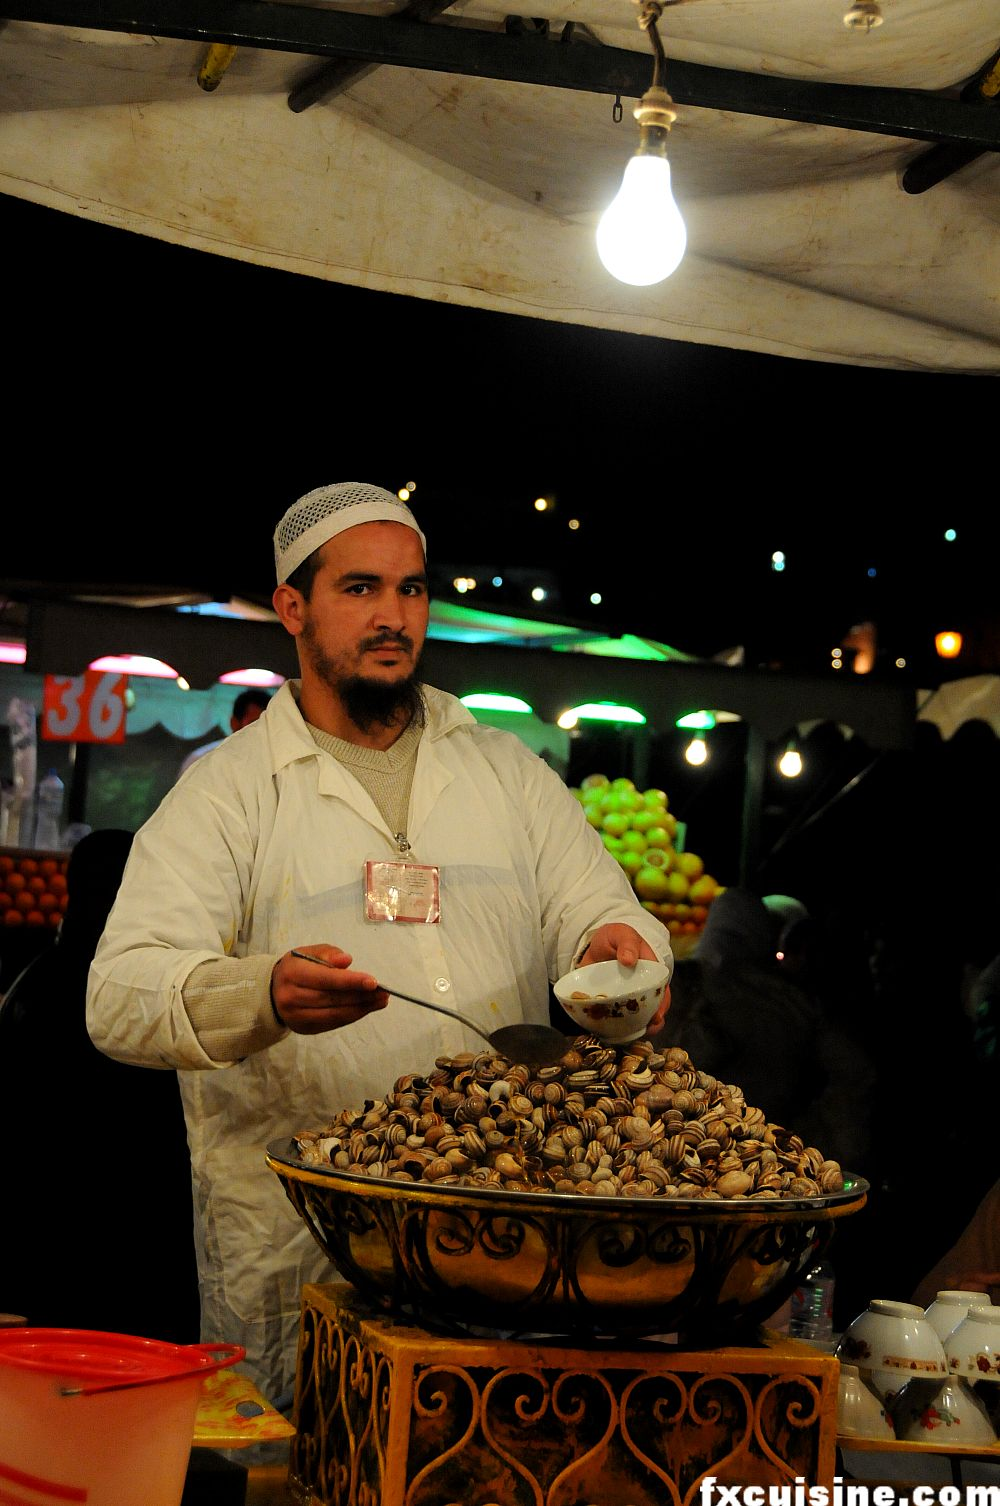 "Back to article &lsquo;<p><a href=""http://fxcuisine.com/zoom-image.asp?image=http://fxcuisine.com/blogimages/moroccan-cuisine/marrakech-jemaa-el-fna/jemaa-jamaa--el-fna-marrakech-food-15-1000.jpg&t=%%t%%""><img src=""http://f&rsquo;"